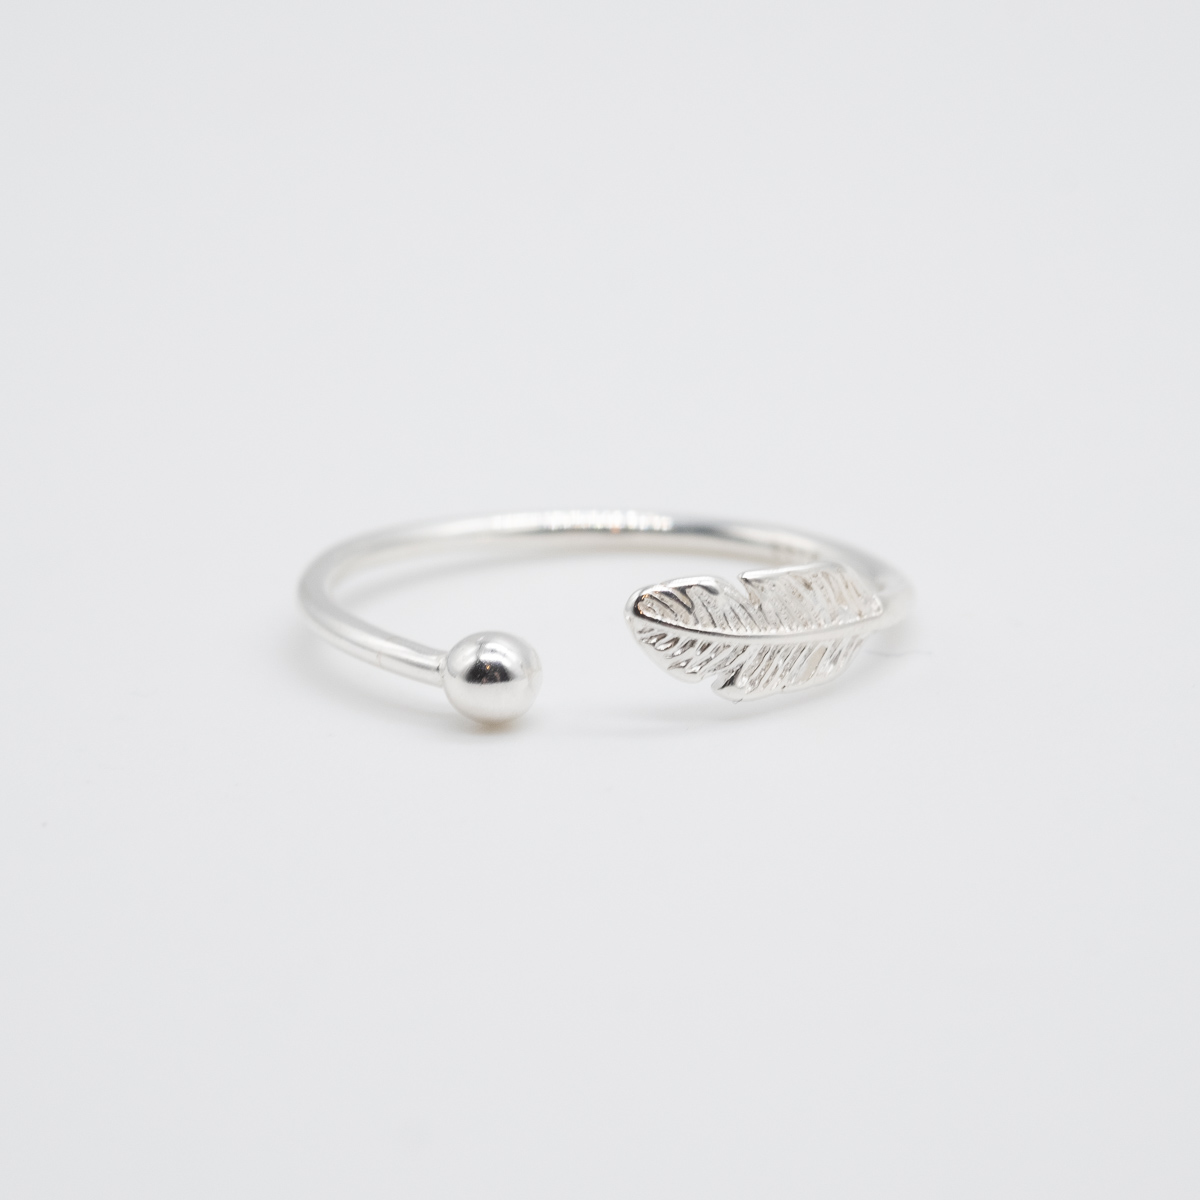 RNG-001 sterling zilver bohemian ring